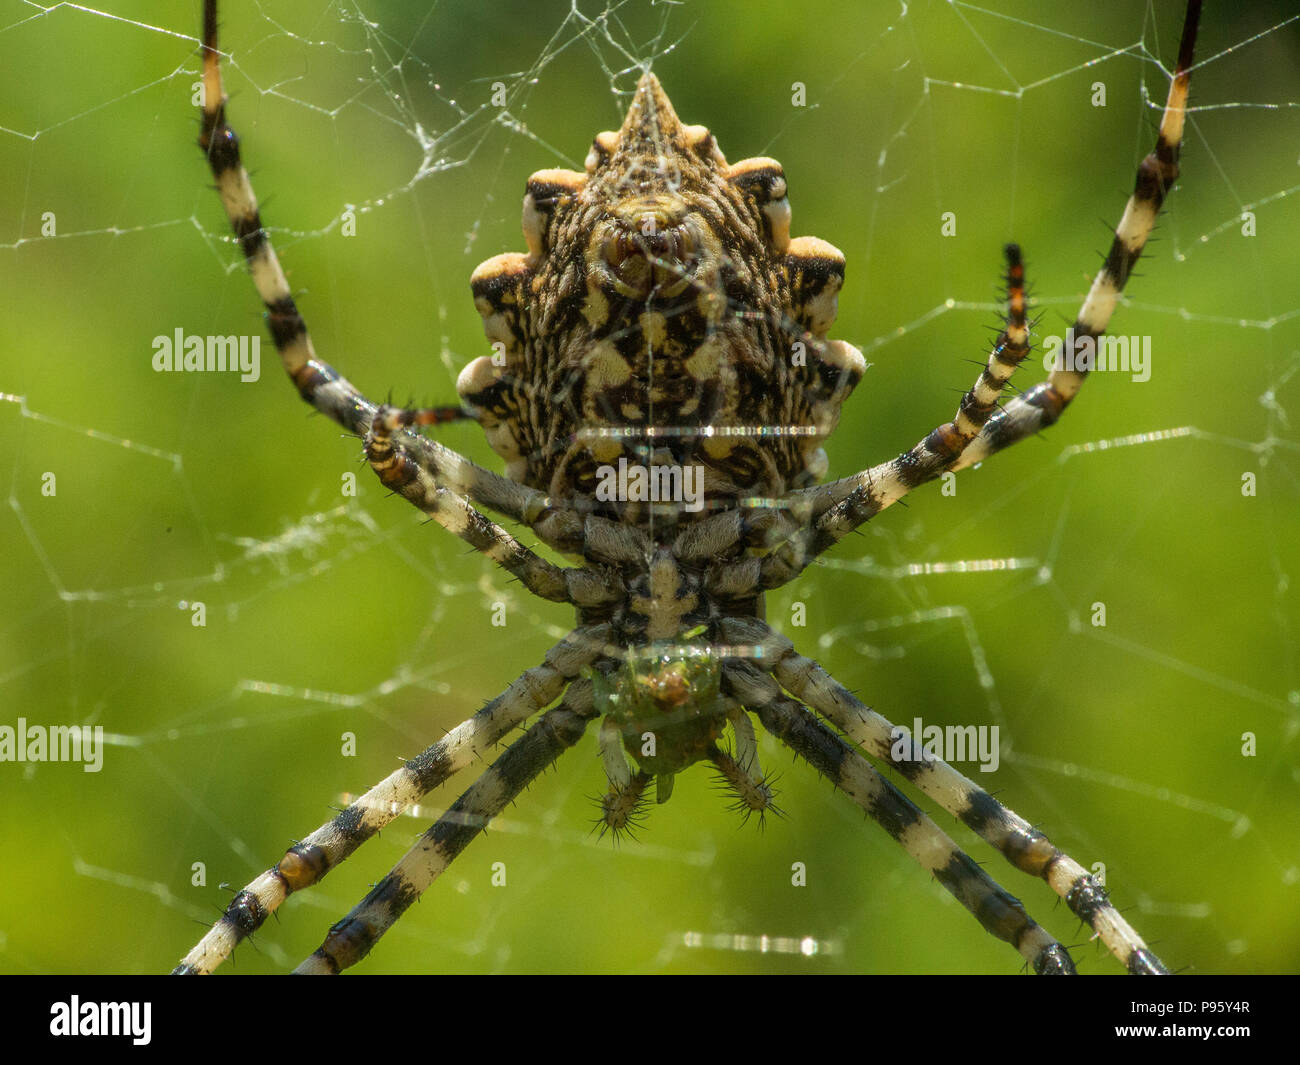 Argiope lobata is a species of spider belonging to the family Araneidae. It has a wide distribution encompassing the whole of Africa and stretching to - Stock Image